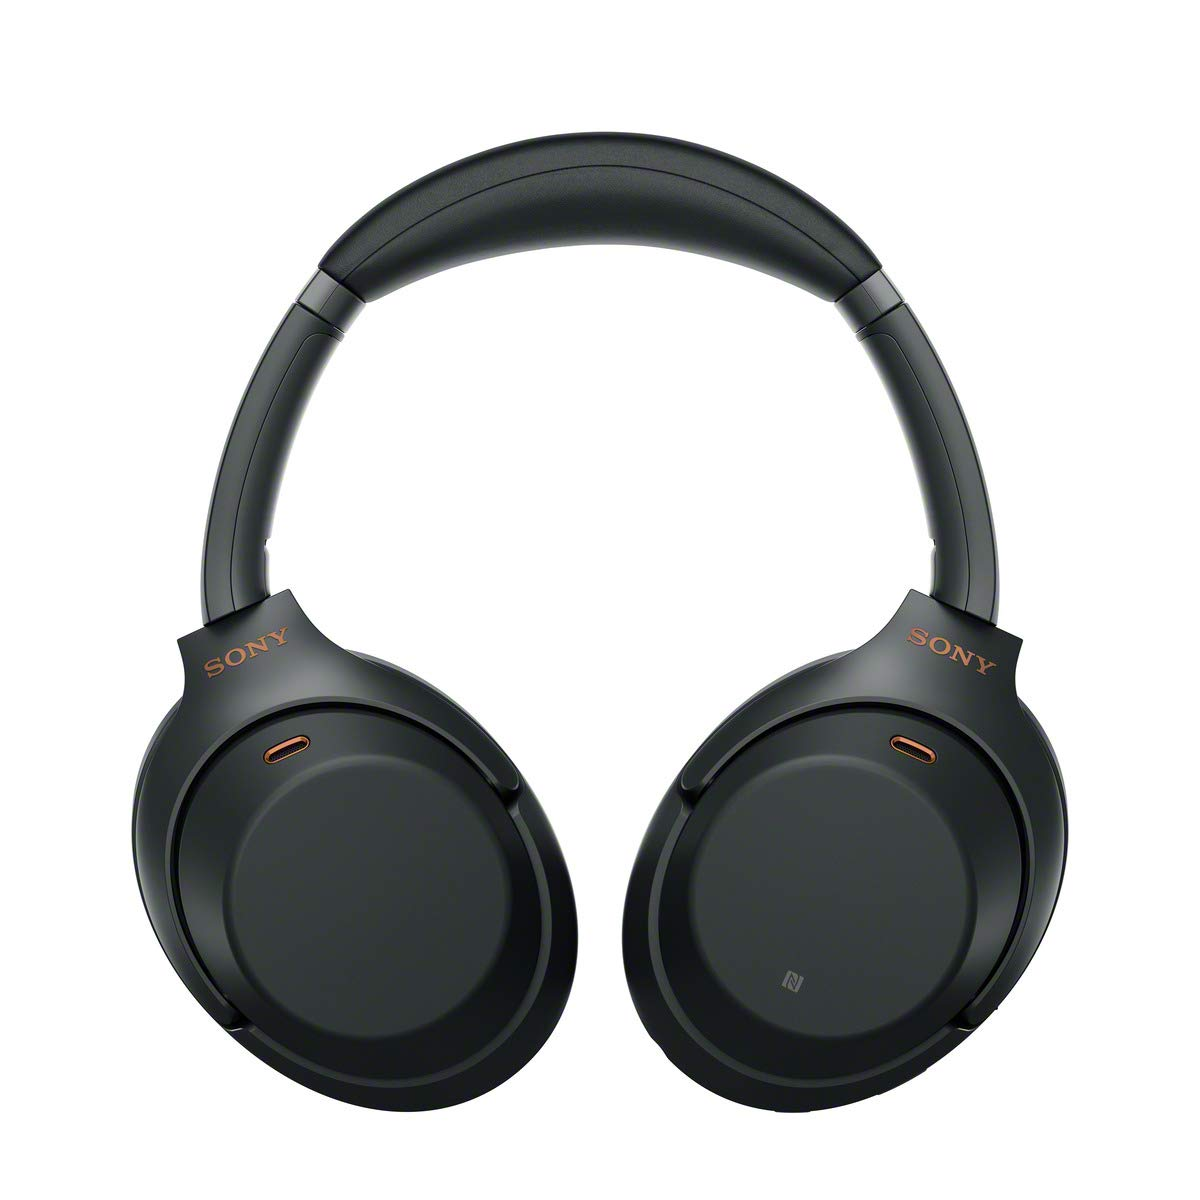 Sony WH-1000XM3 Cuffie Wireless Bluetooth con HD Noise Cancelling 5031d1c24024